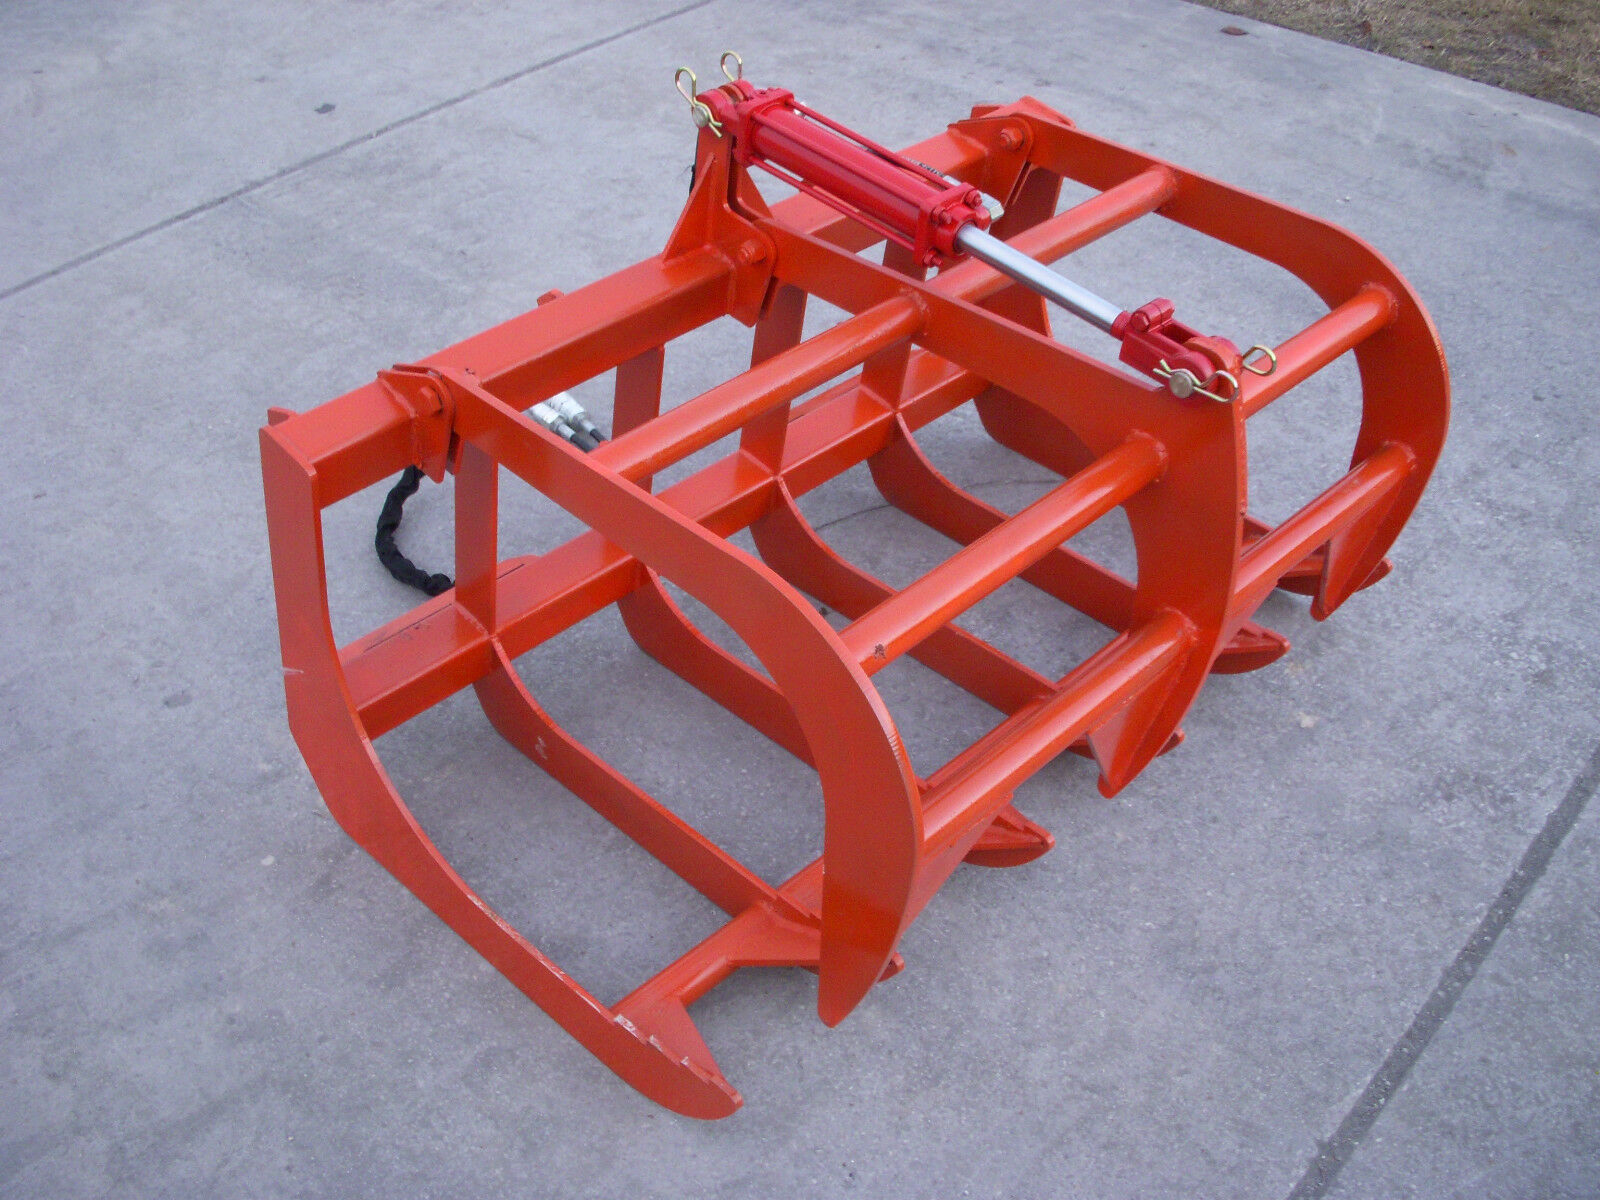 Tractor Bucket Attachments : Kubota compact tractor attachment quot root rake grapple